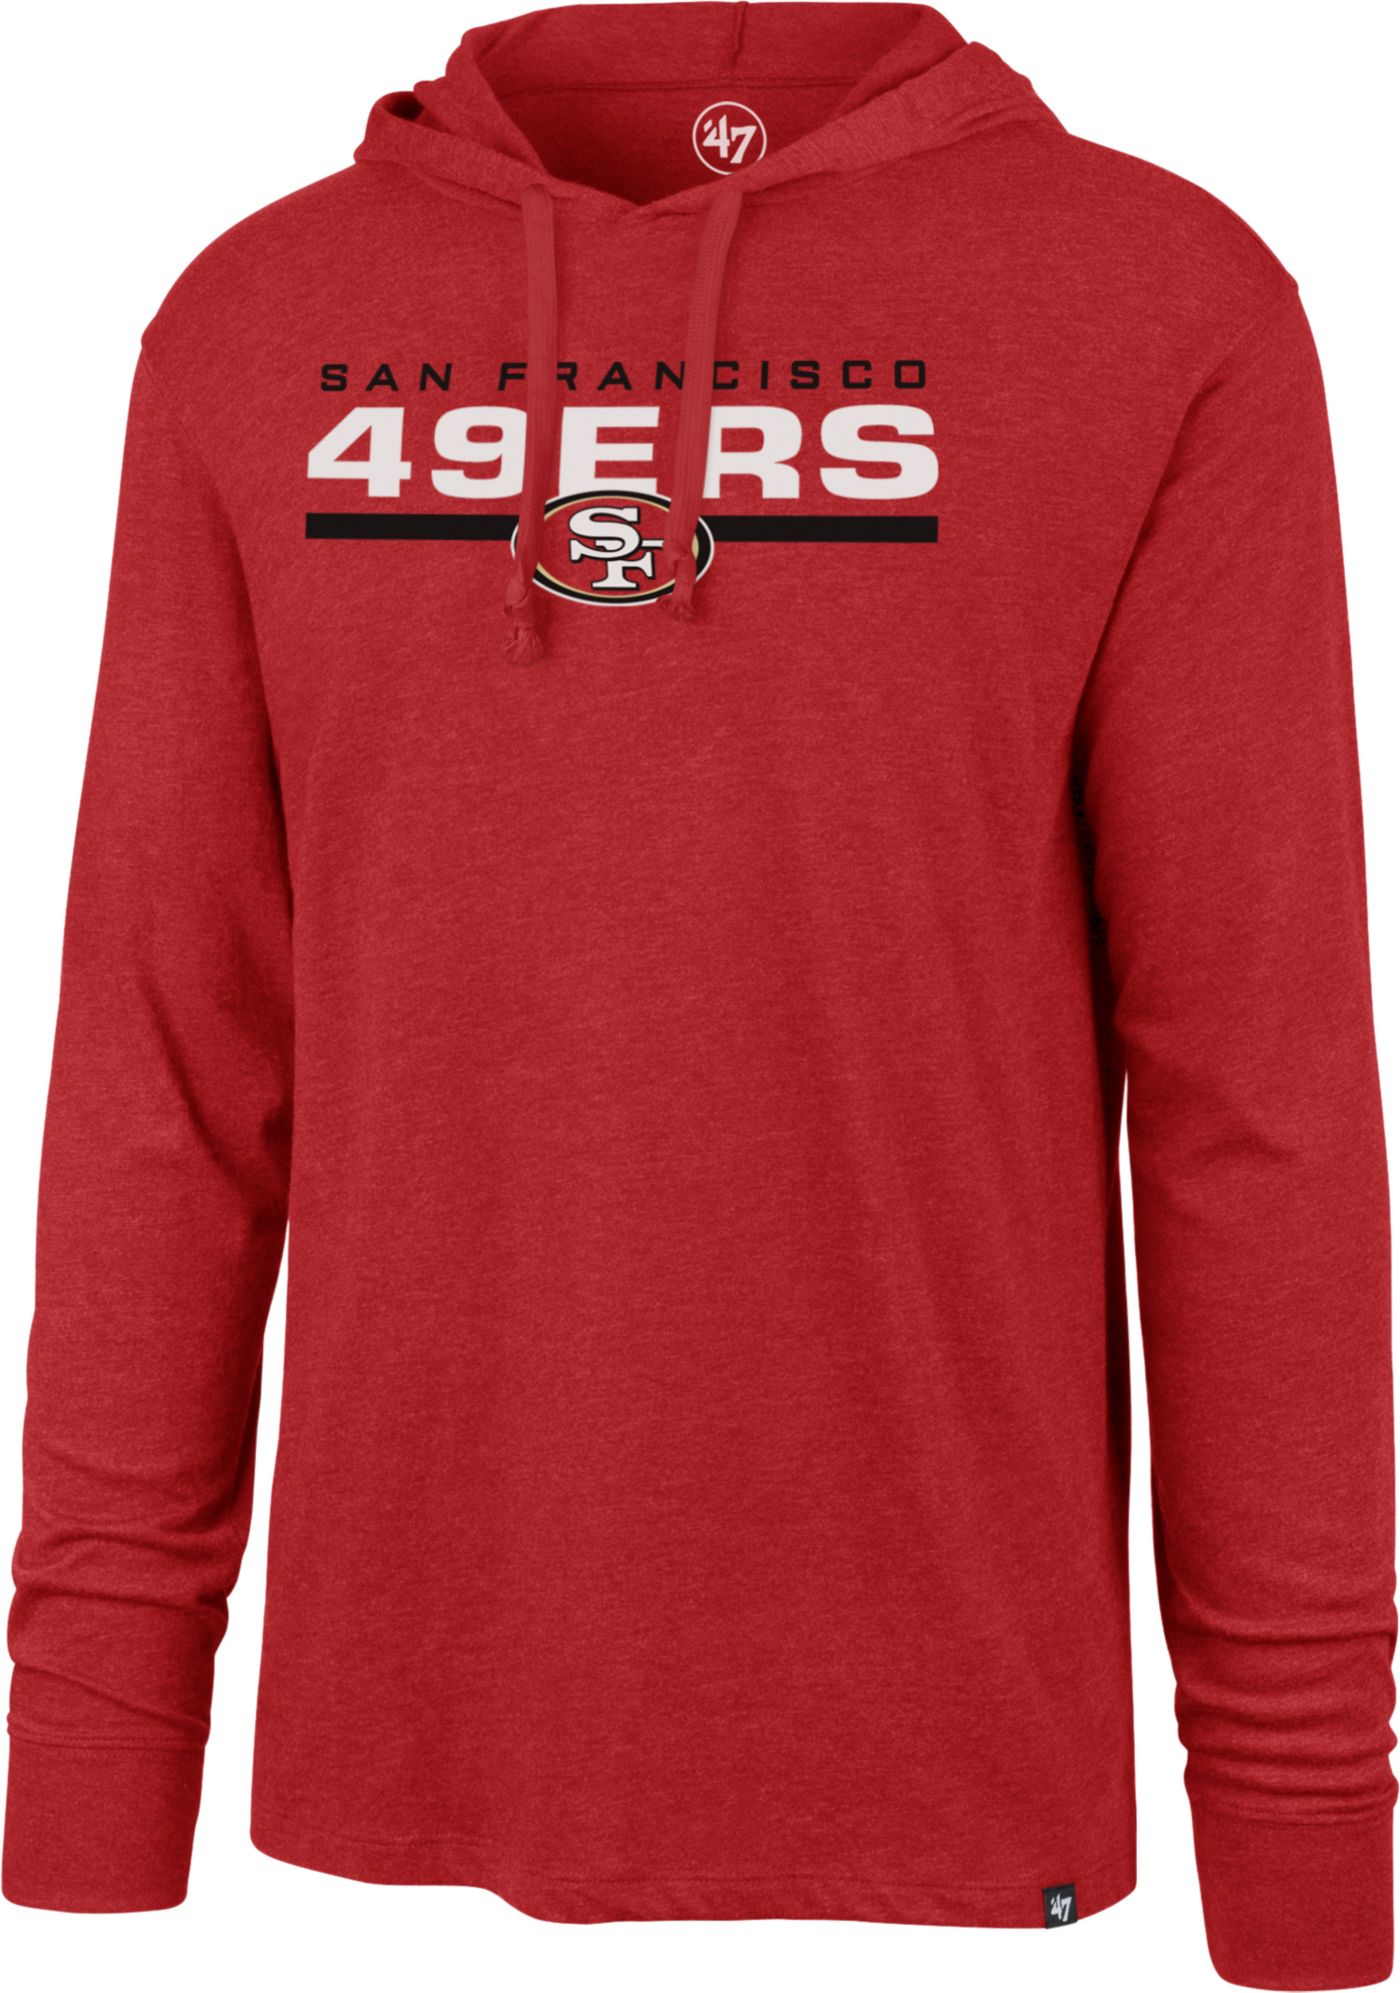 '47 Men's San Francisco 49ers Club Red Hooded Long Sleeve Shirt